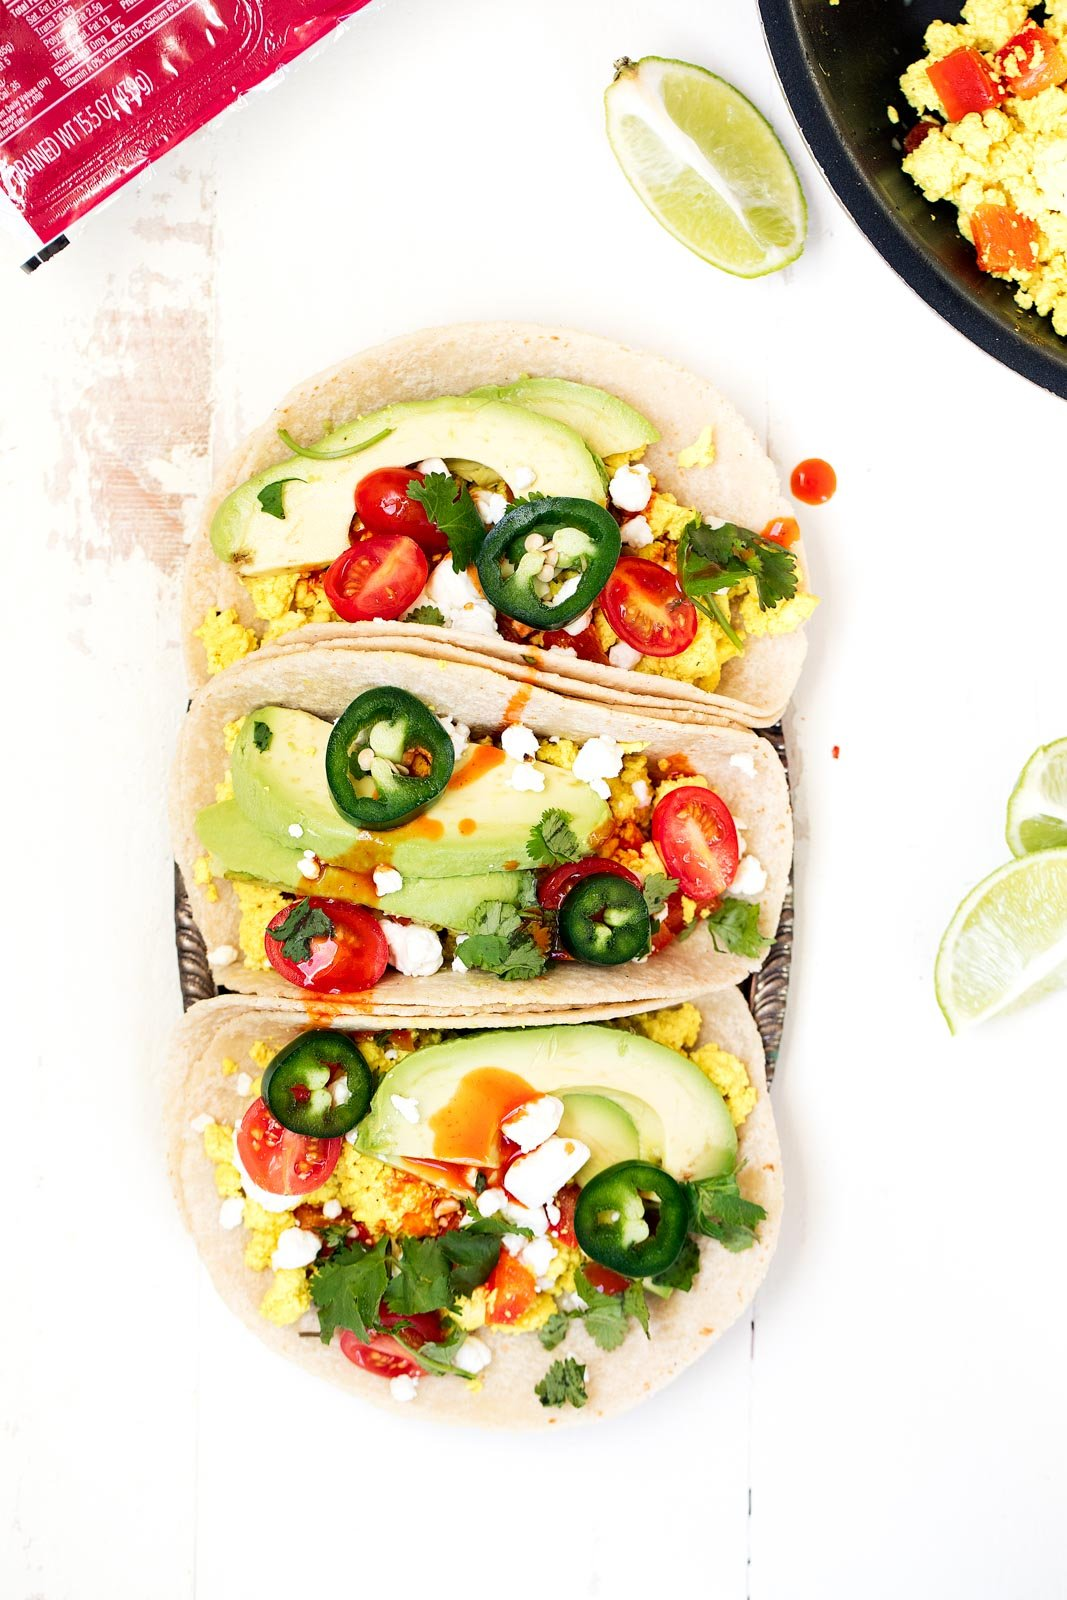 Scrambled tofu with delicious spices gets piled high into corn tortillas and topped with avocado, cilantro and so much more! Easy to make ahead and reheat for an on the go breakfast.